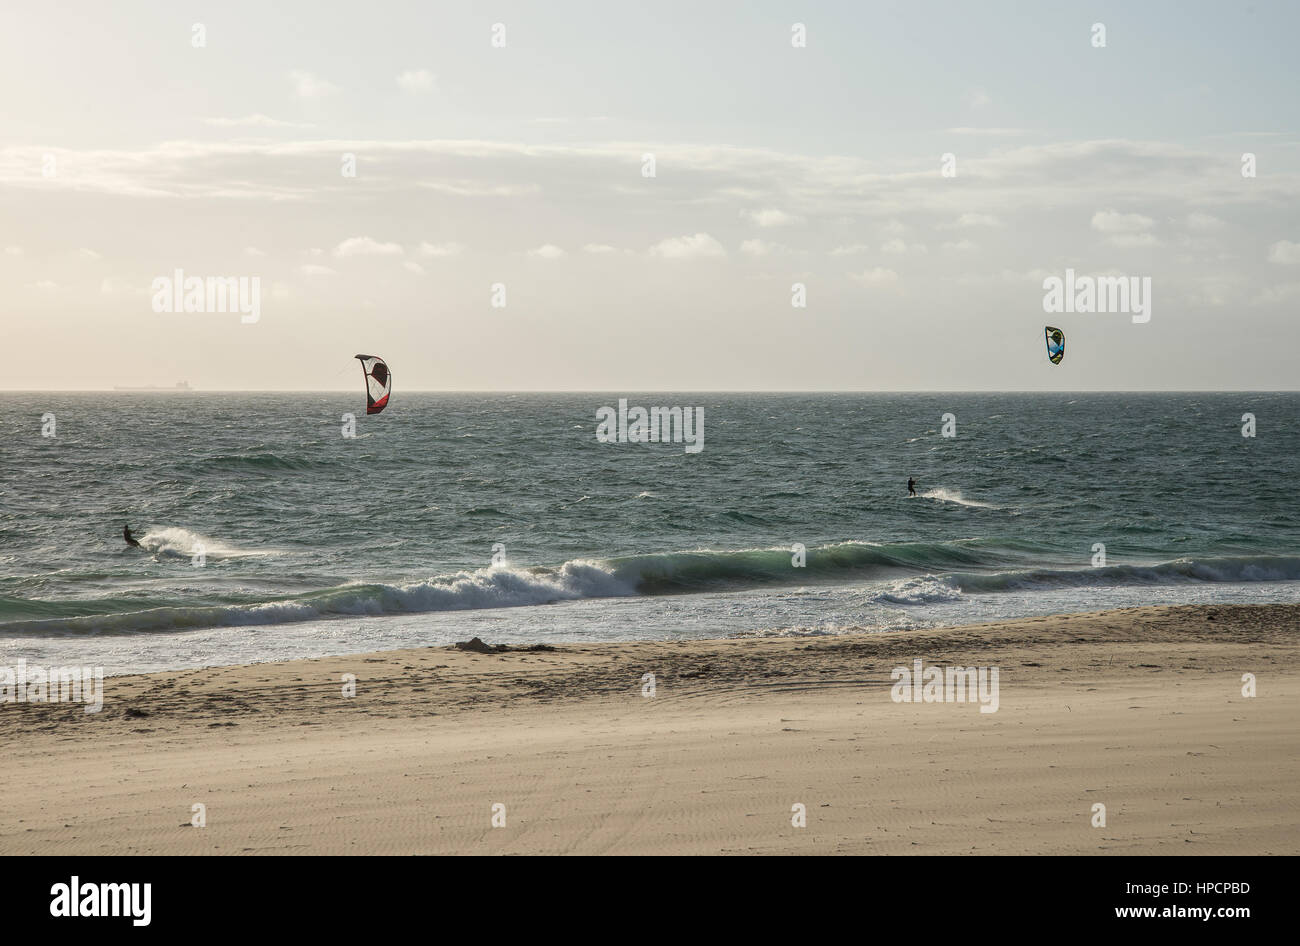 Two men kitesurfing on the beach in Indian ocean in Perth, Western Australia Stock Photo